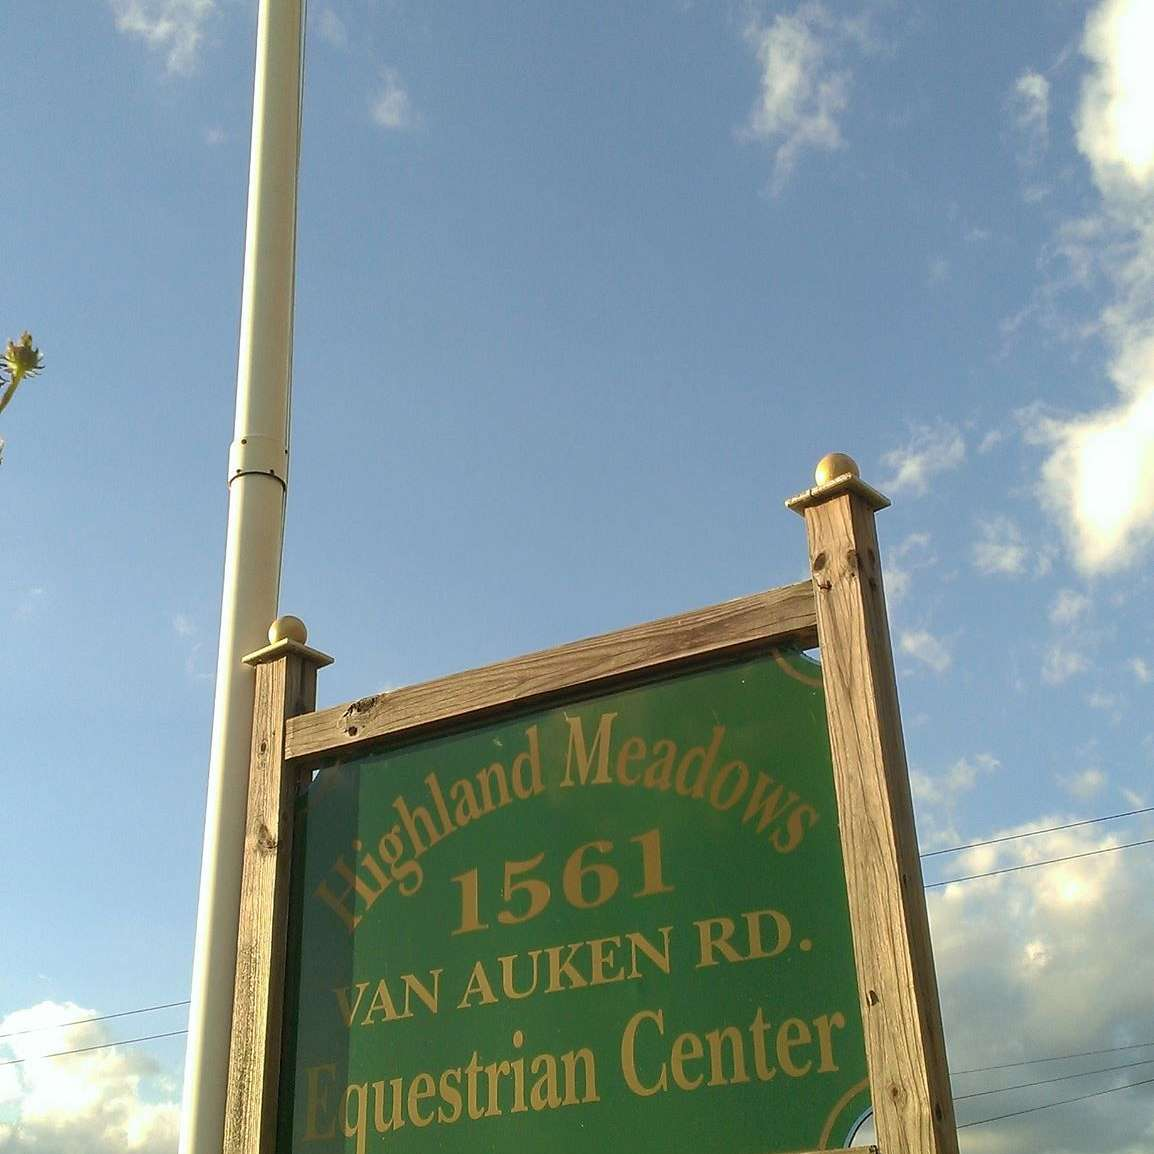 Highland Meadows Equestrian Center